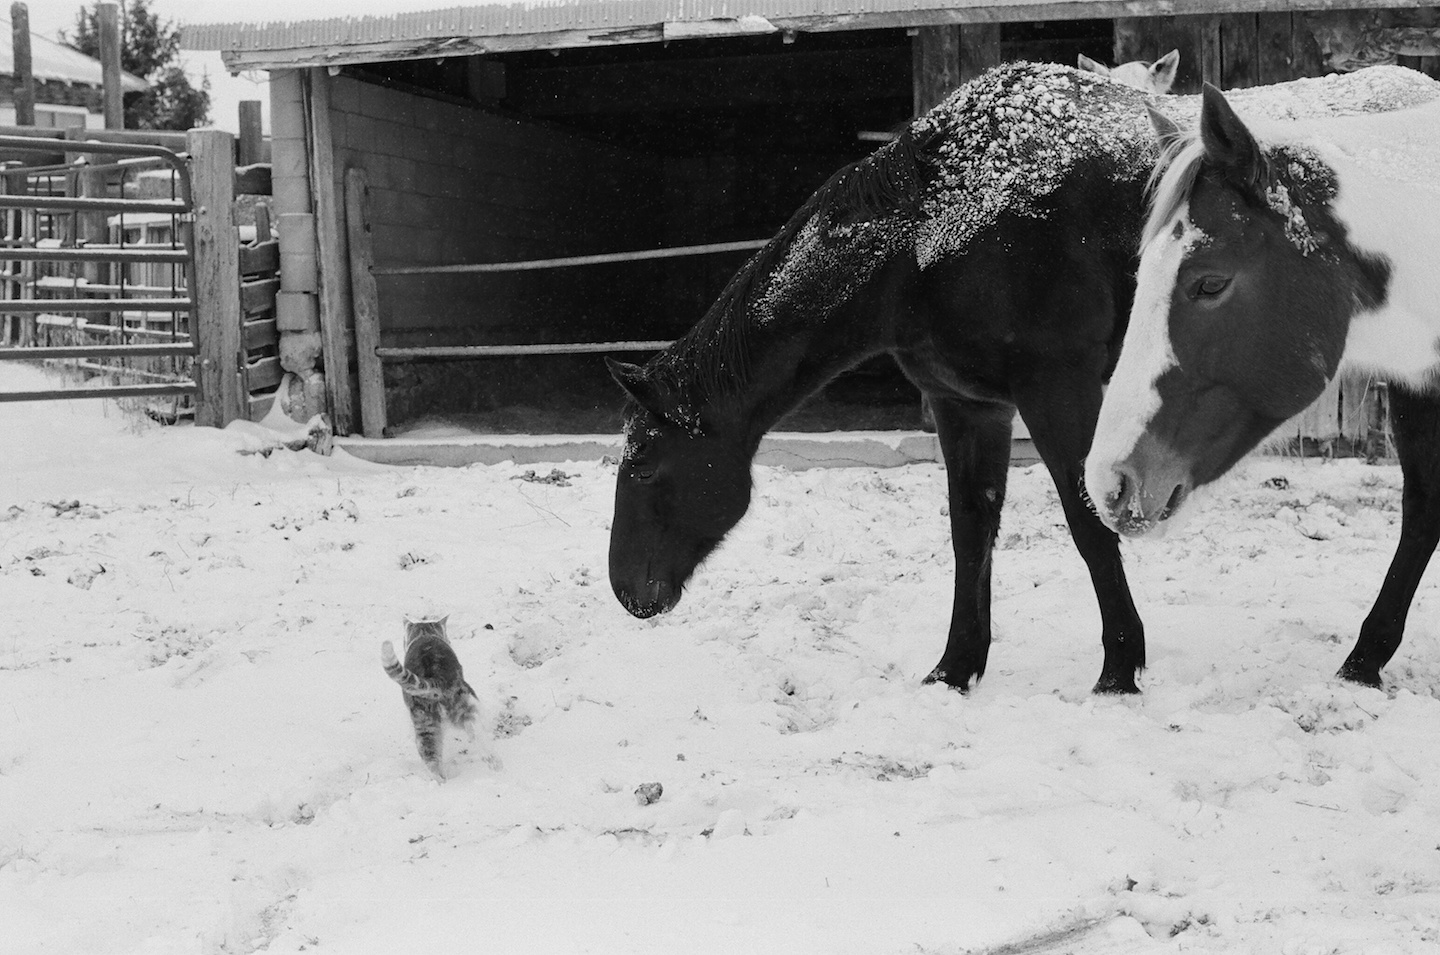 horses follow cat in snow